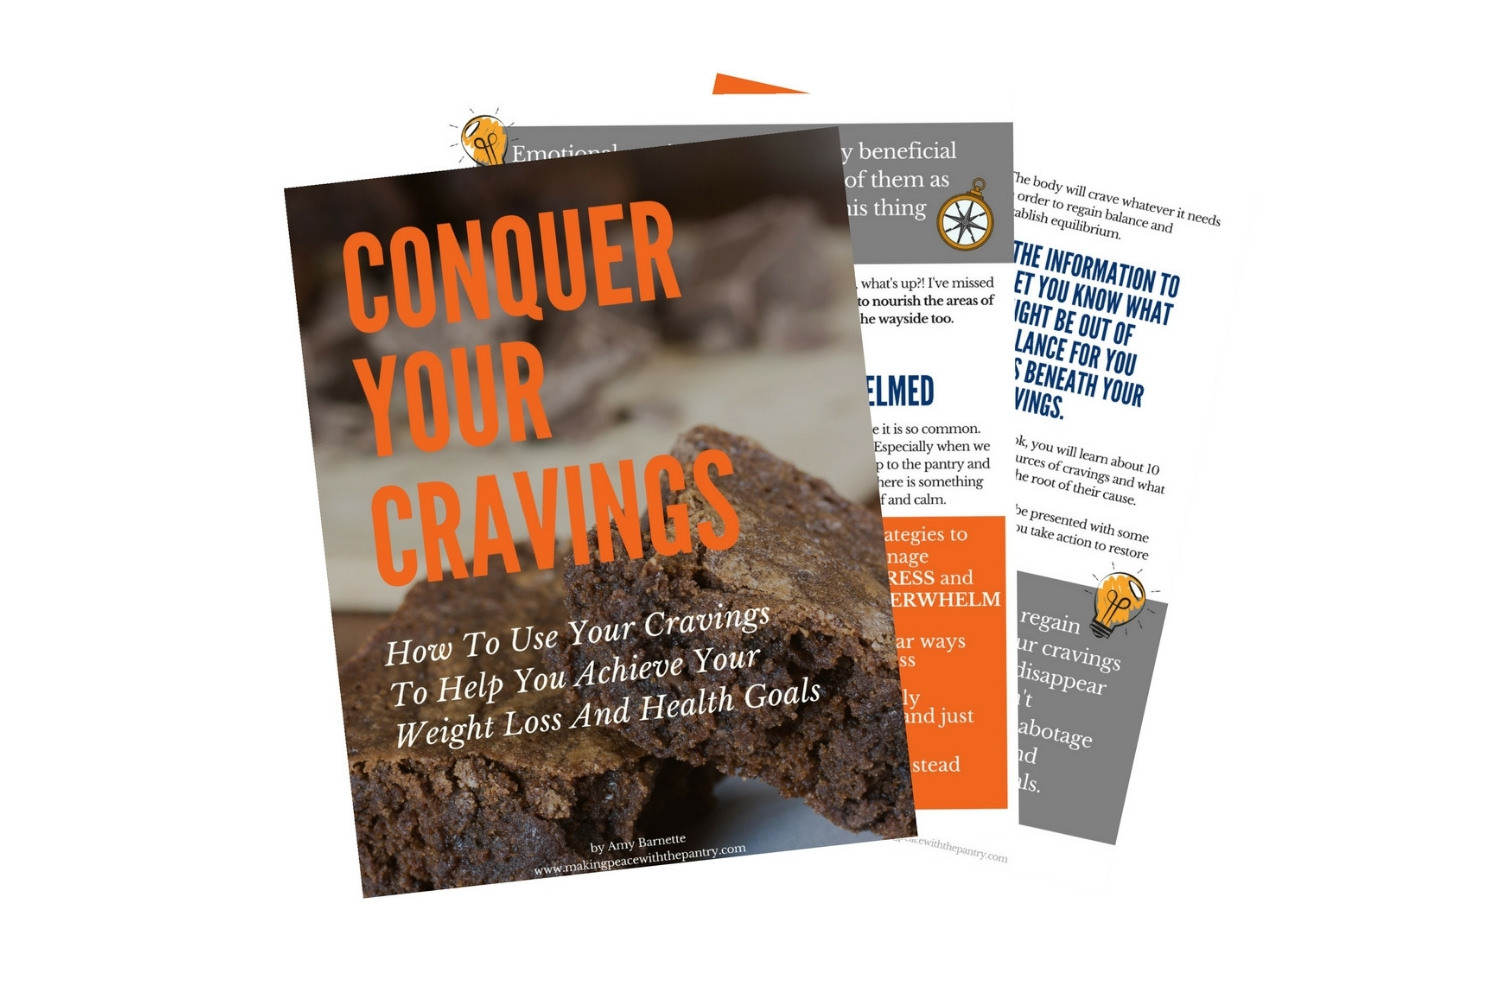 Demystify your food cravings and build a better understanding and appreciation of your body with this free eBook and companion email course.